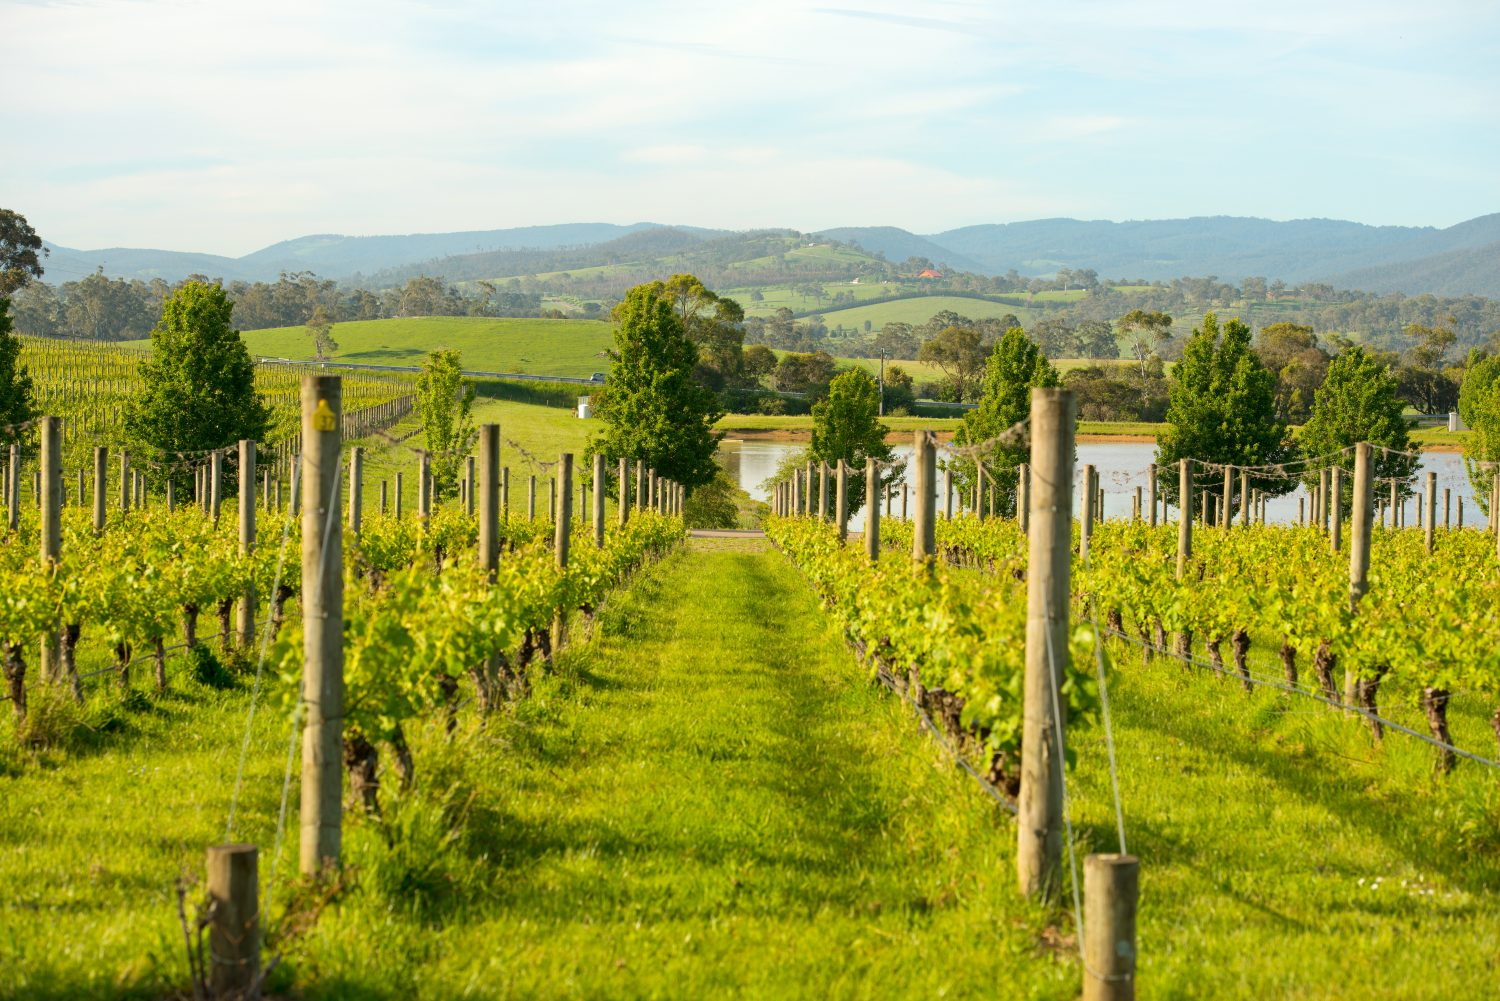 Yarra Valley wines